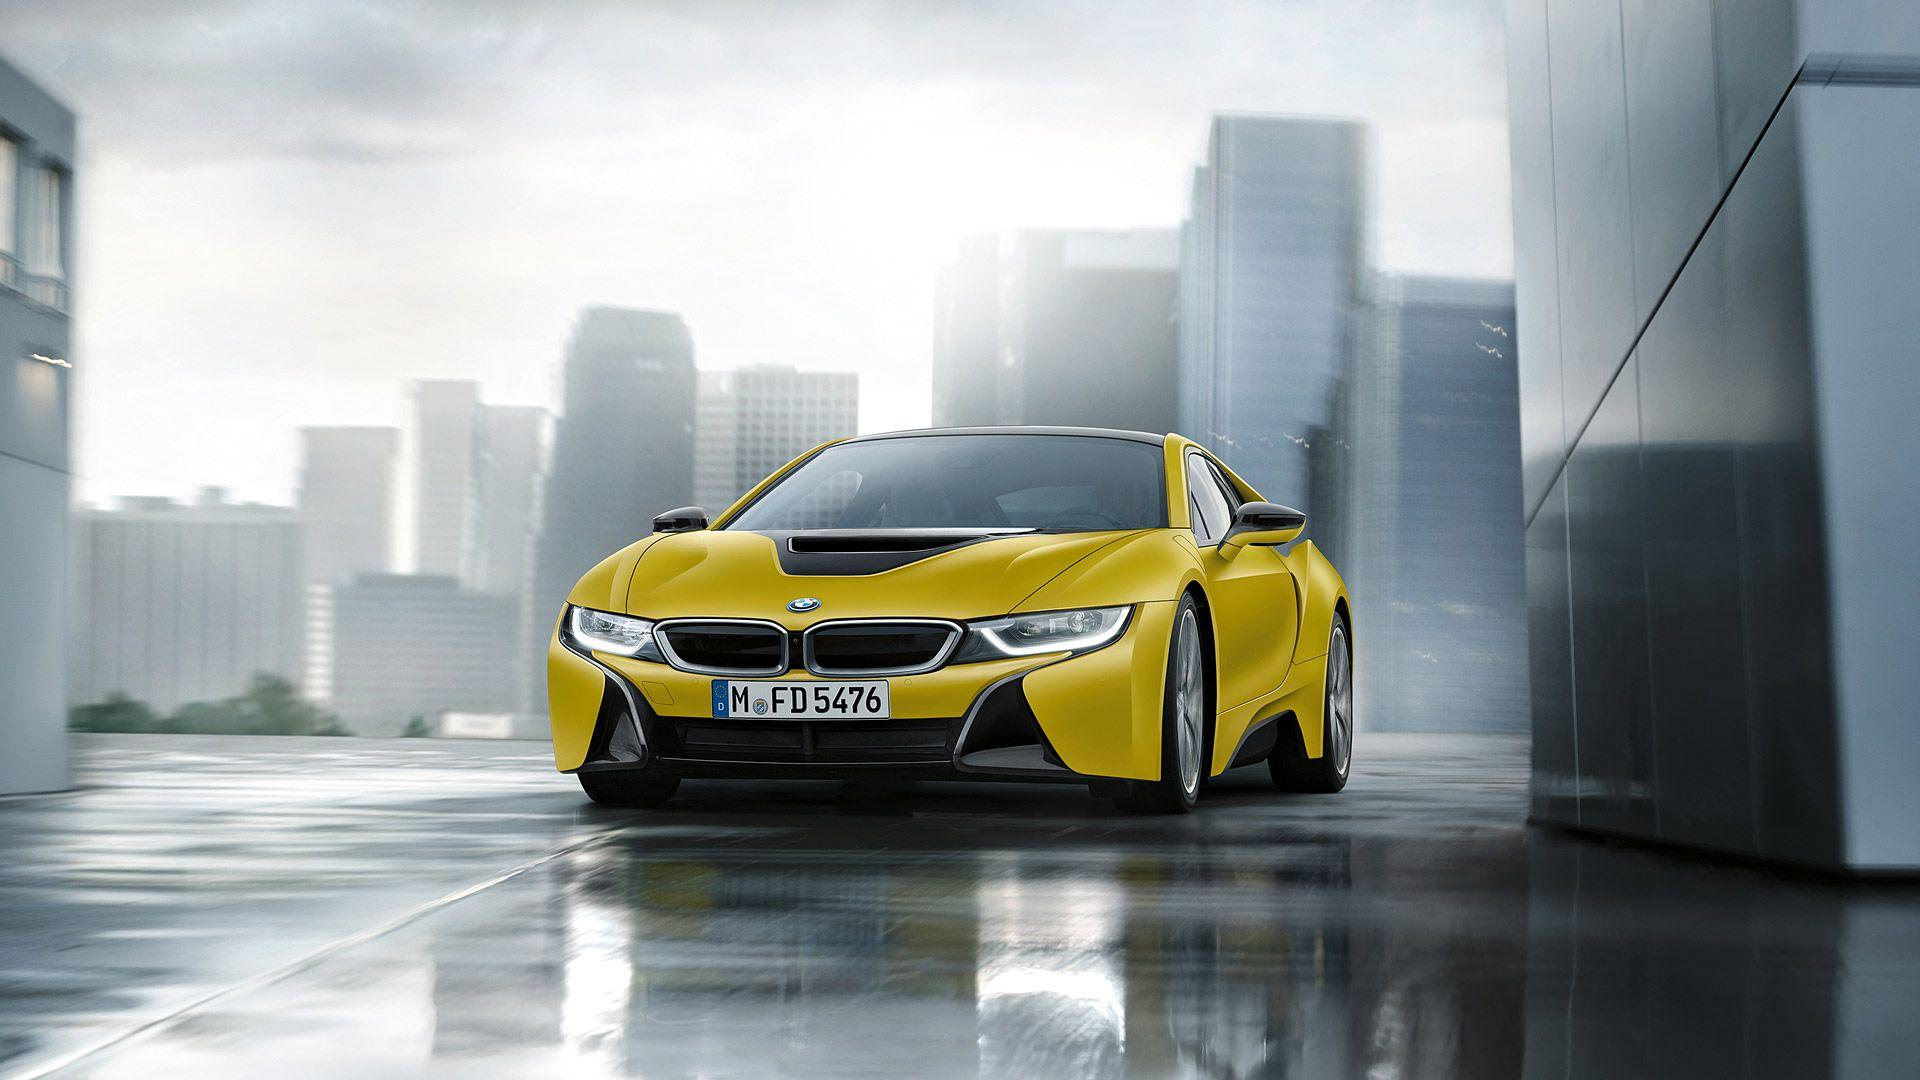 2018 BMW i8 Protonic Frozen Yellow Wallpapers & HD Image